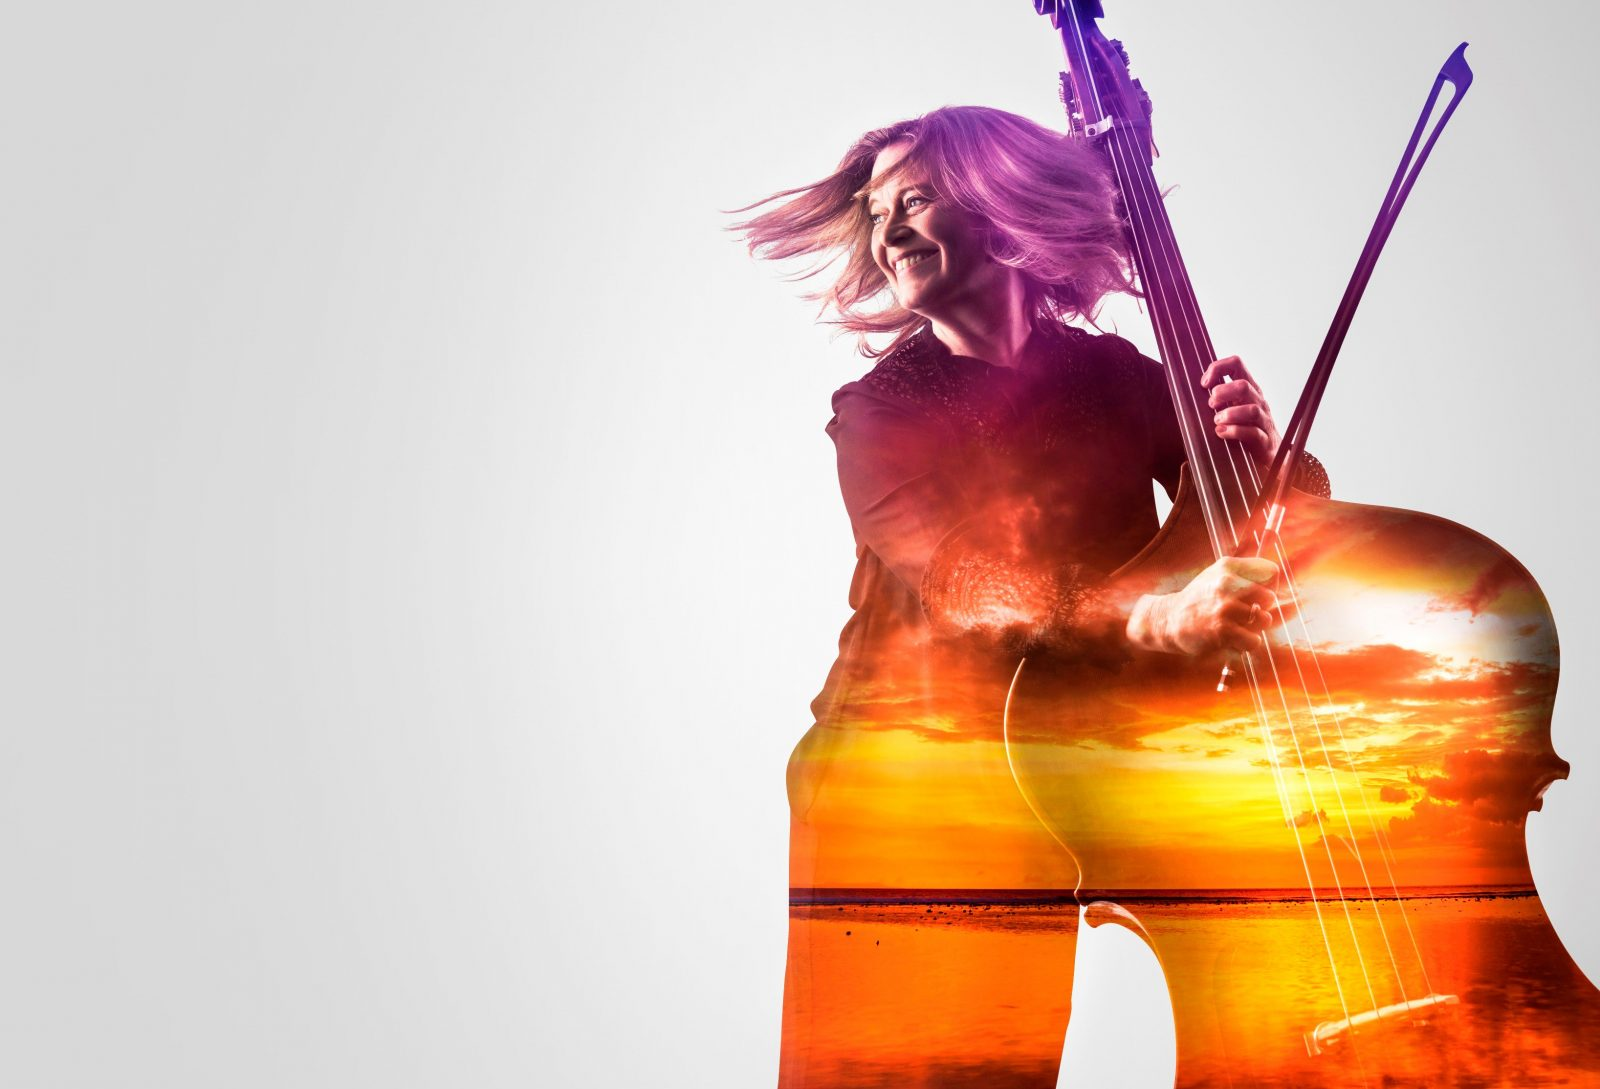 Bass player with superimposed sunset looking into distance joyfully